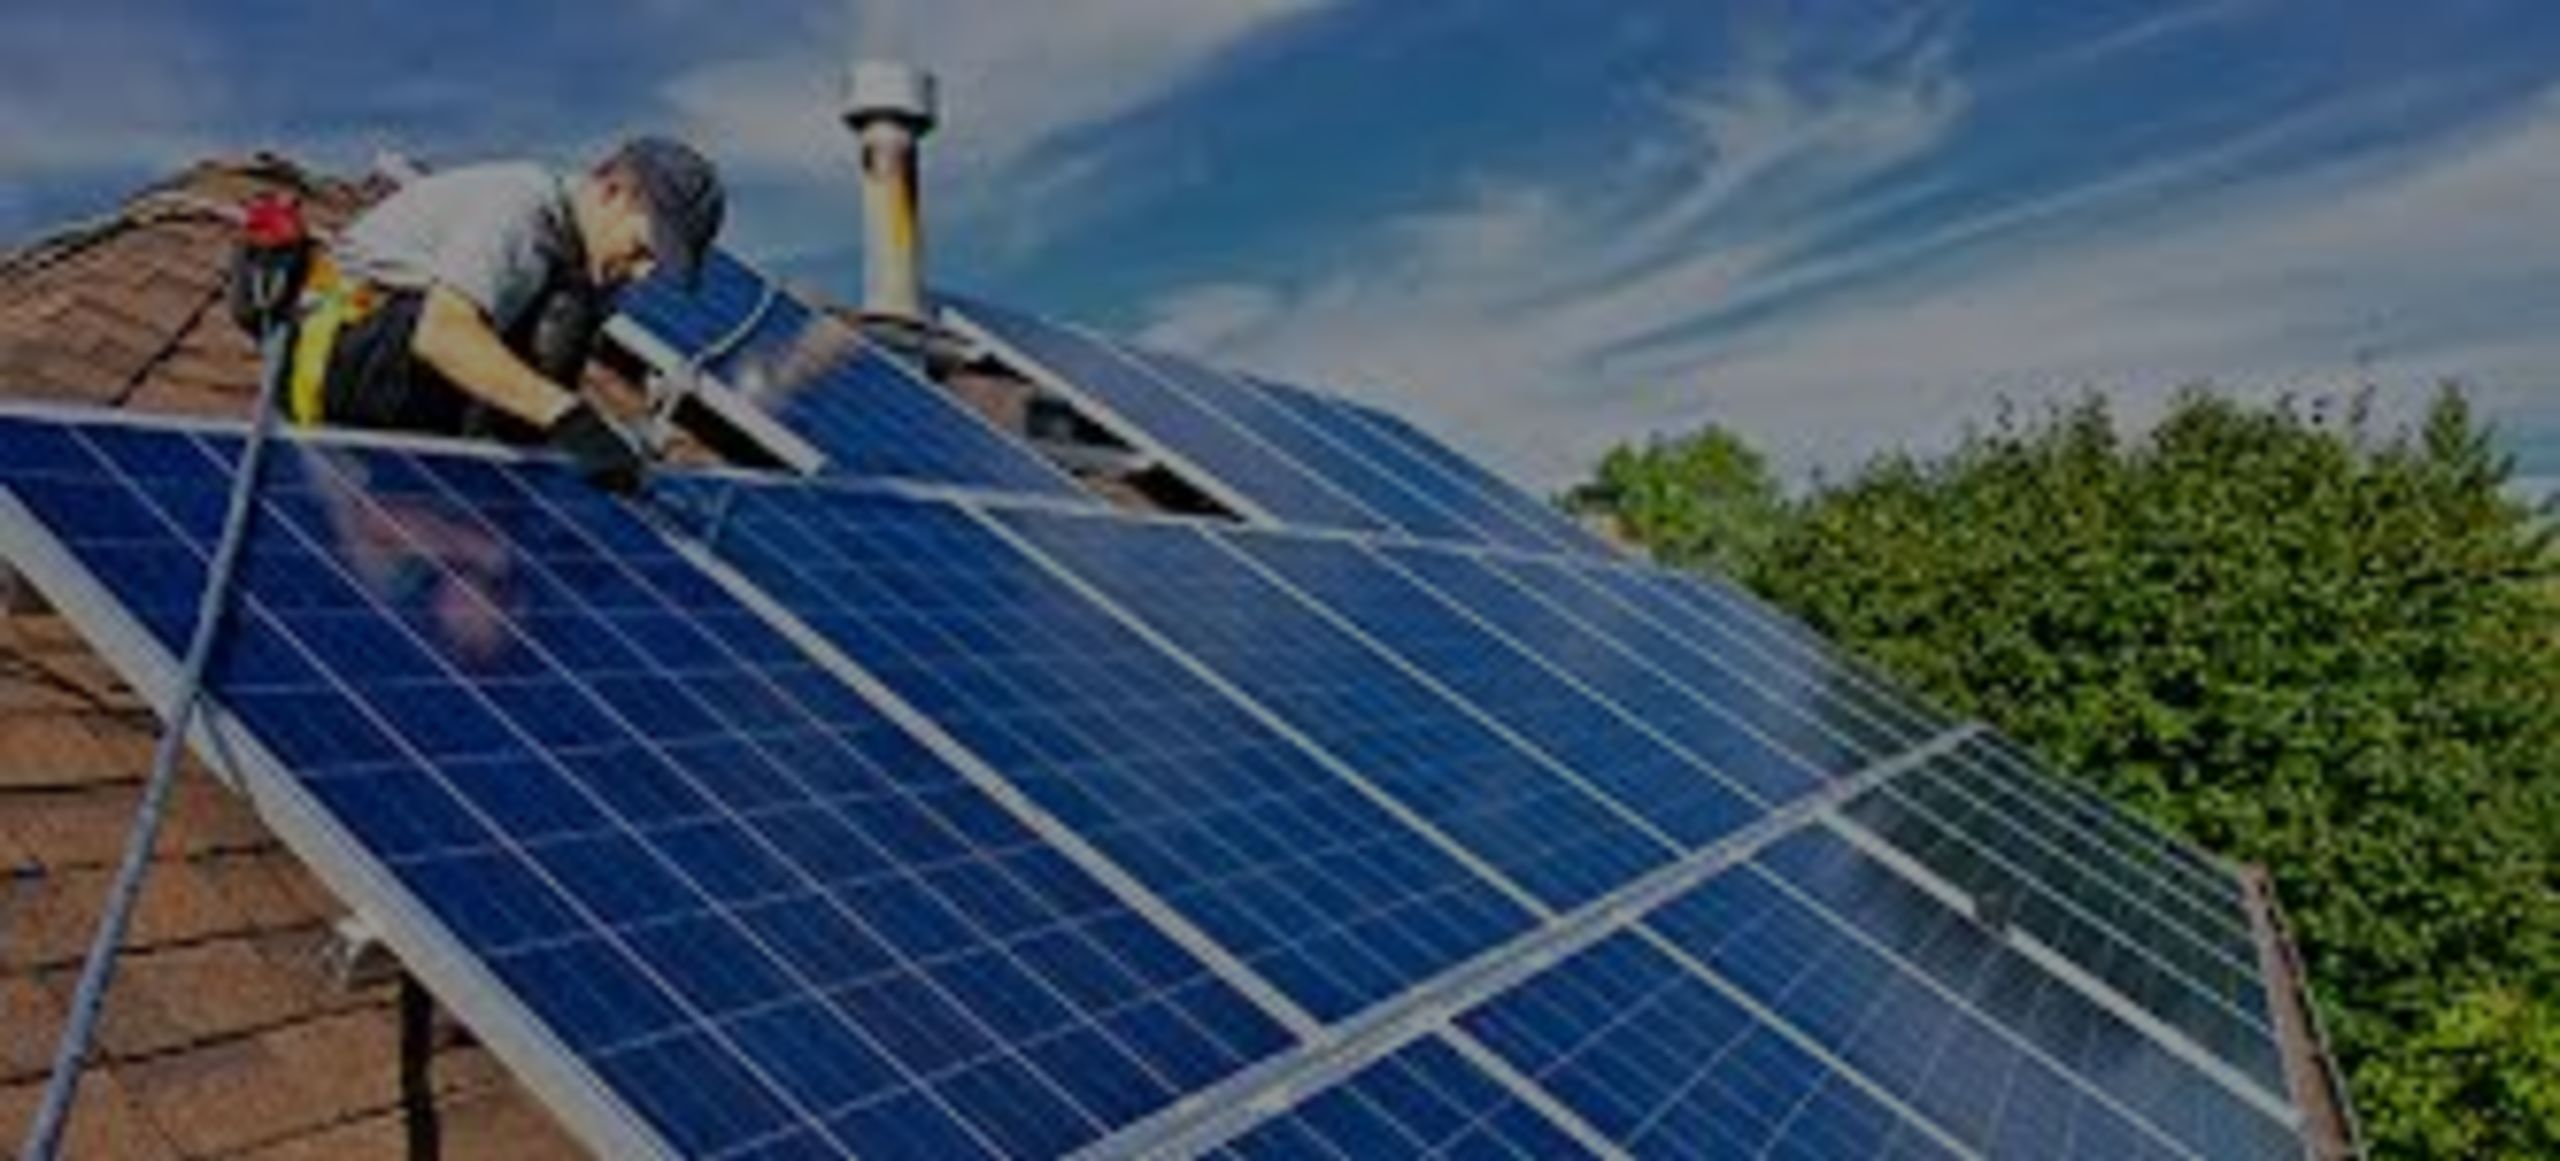 Solar Boosts Values But Selling Can Be Tricky